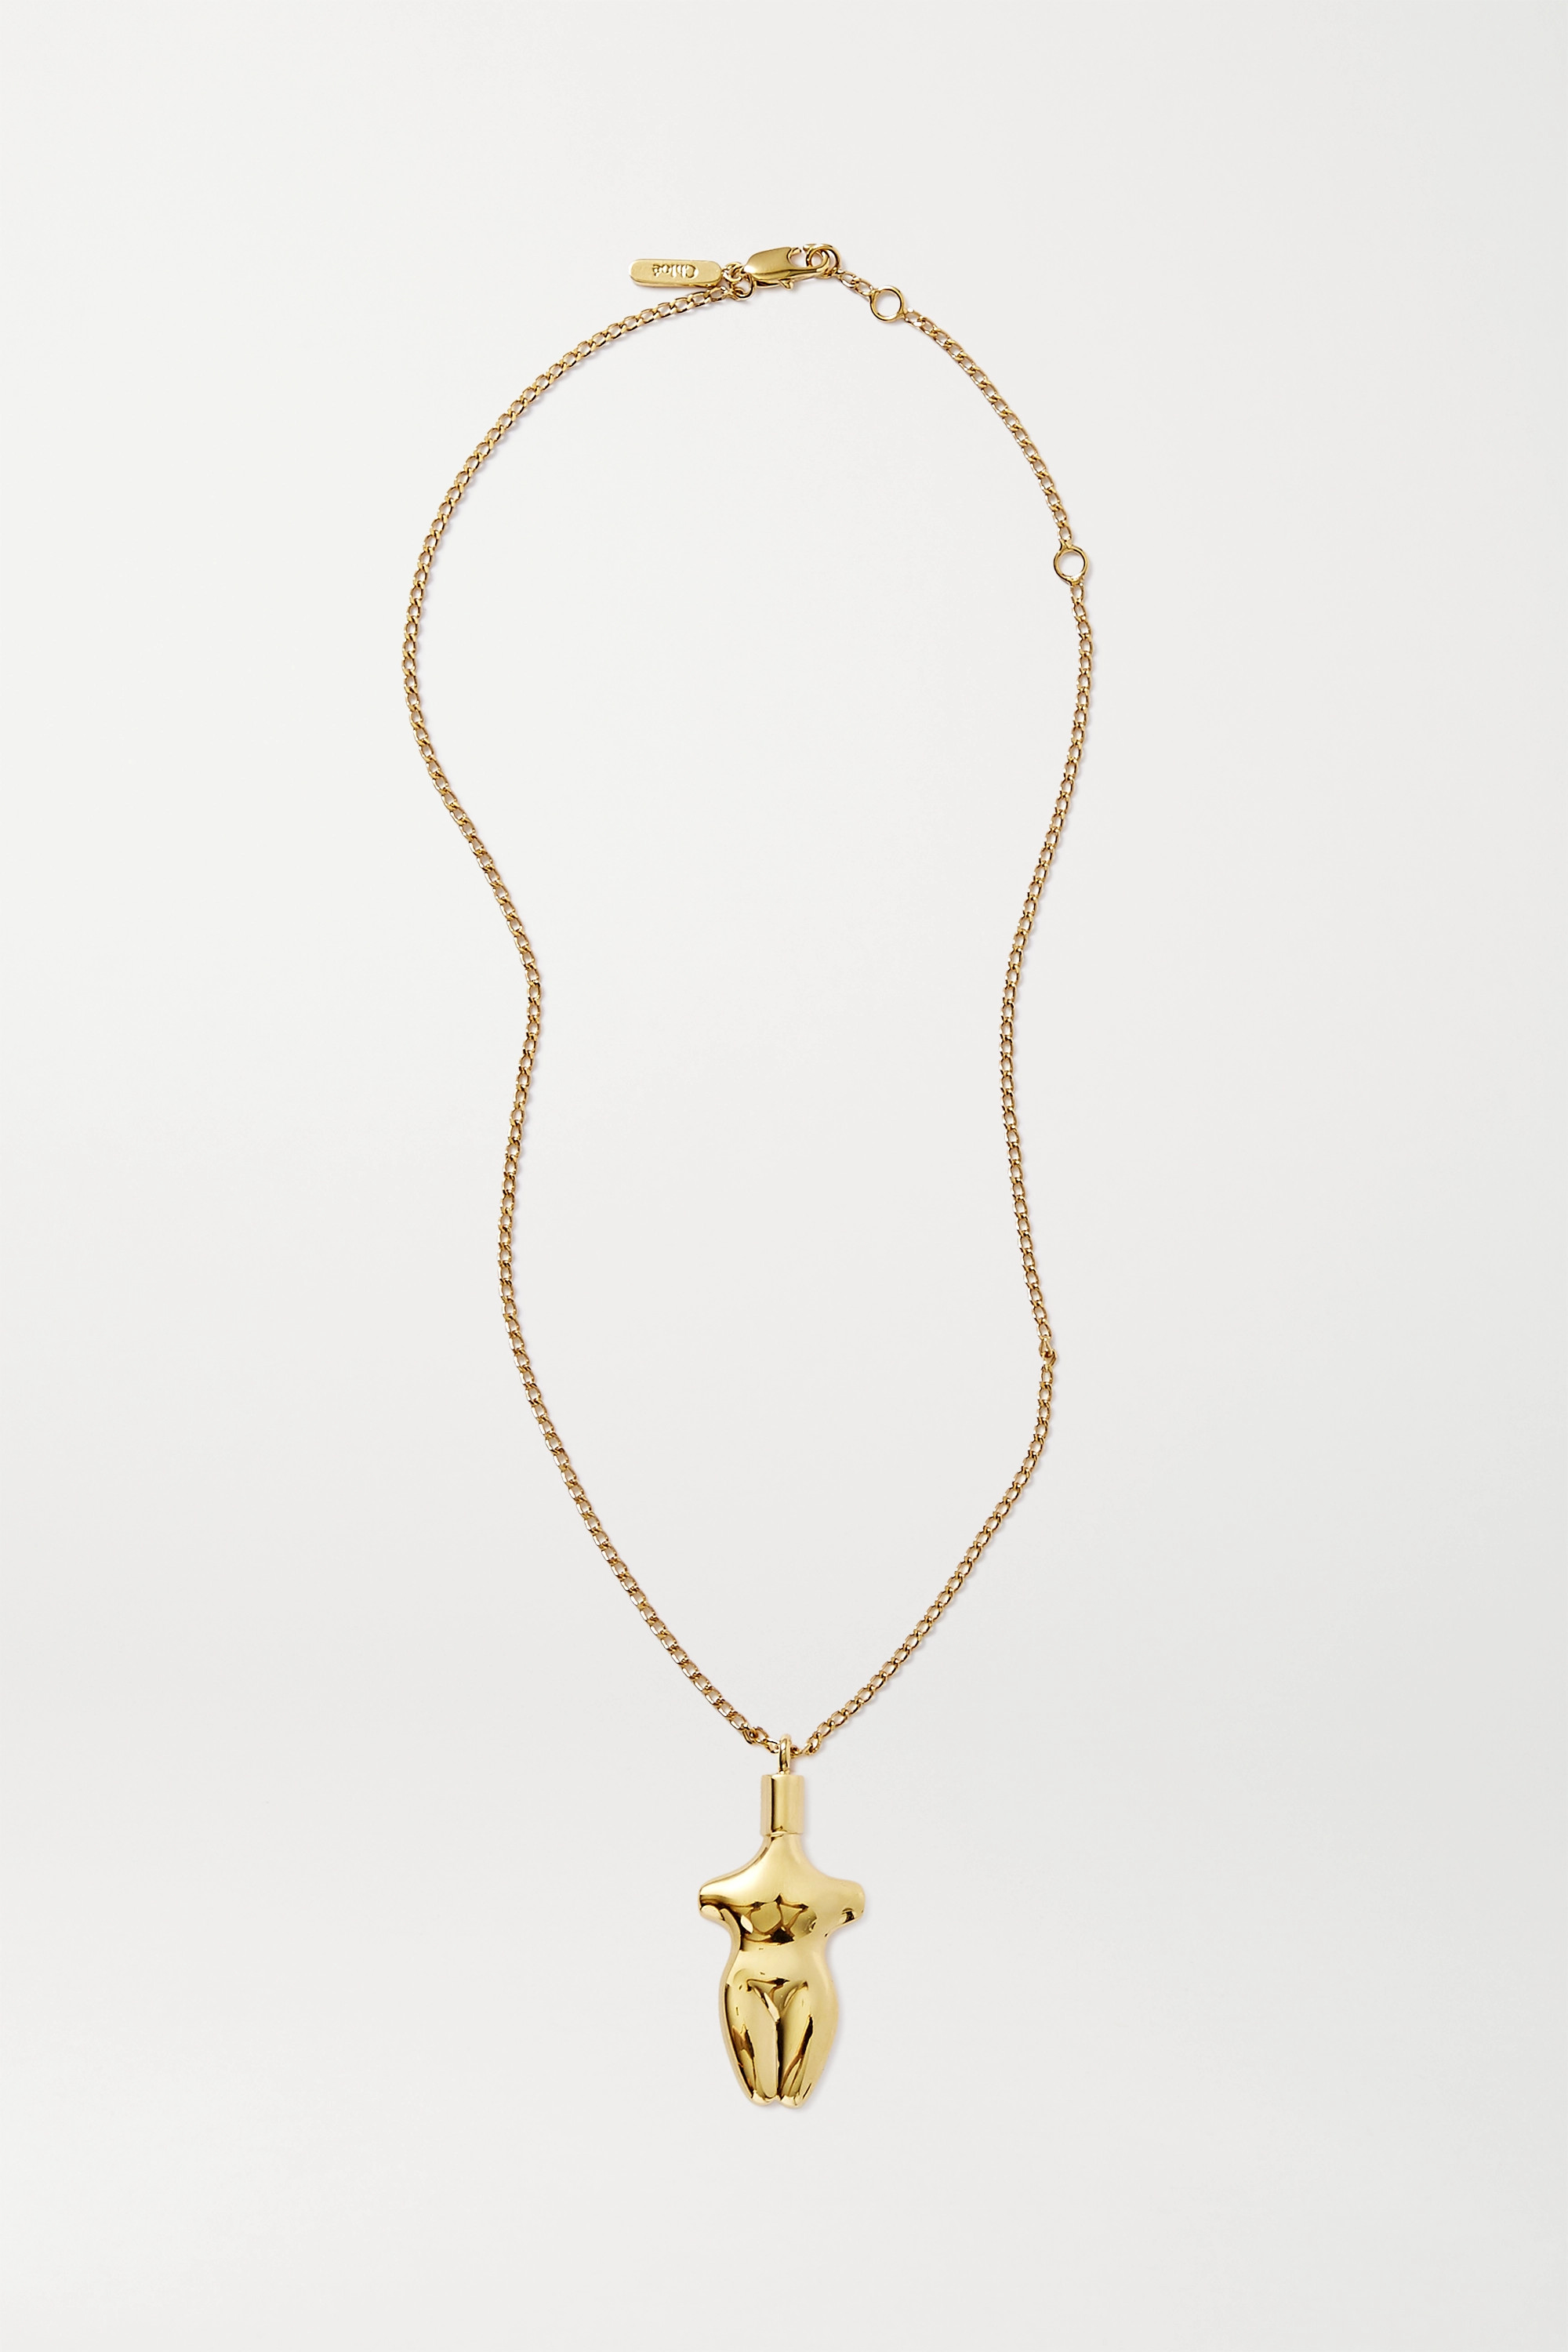 Chloé Femininities gold-tone necklace